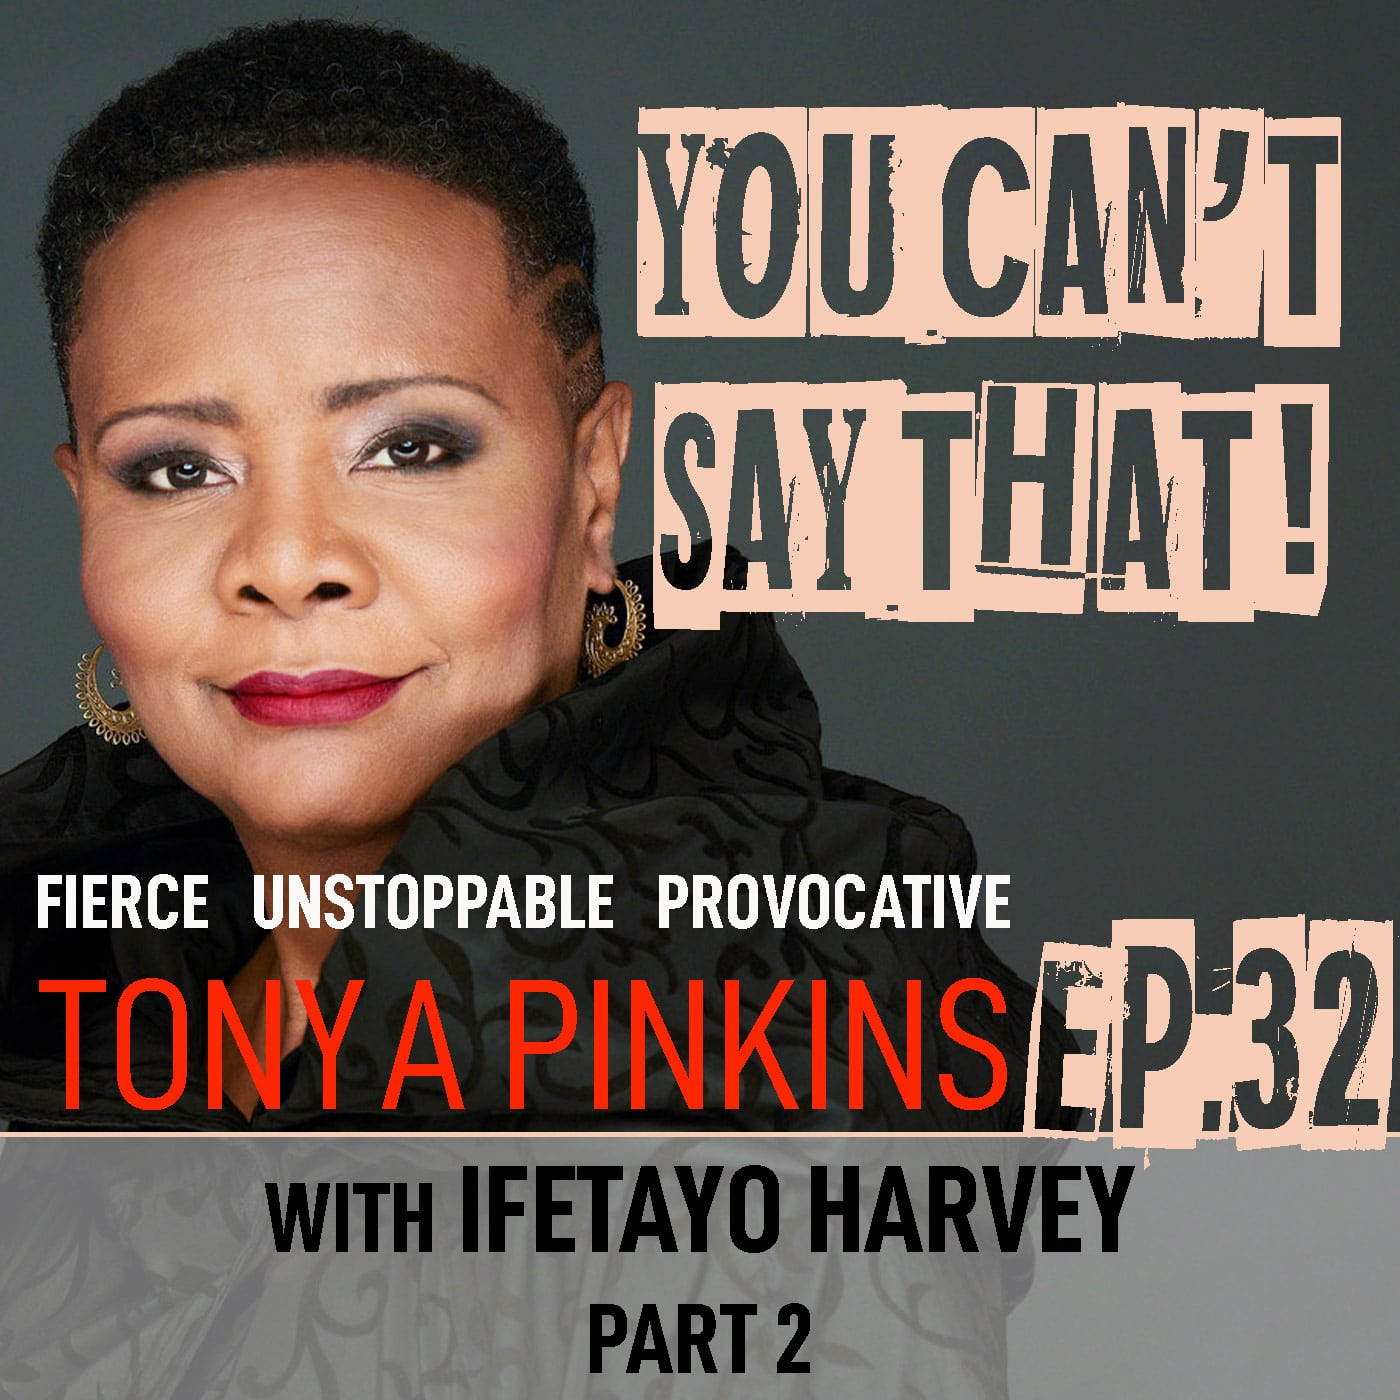 Tonya Pinkins You Cant Say That Episode 32 Ifetayo Harvey Part 2